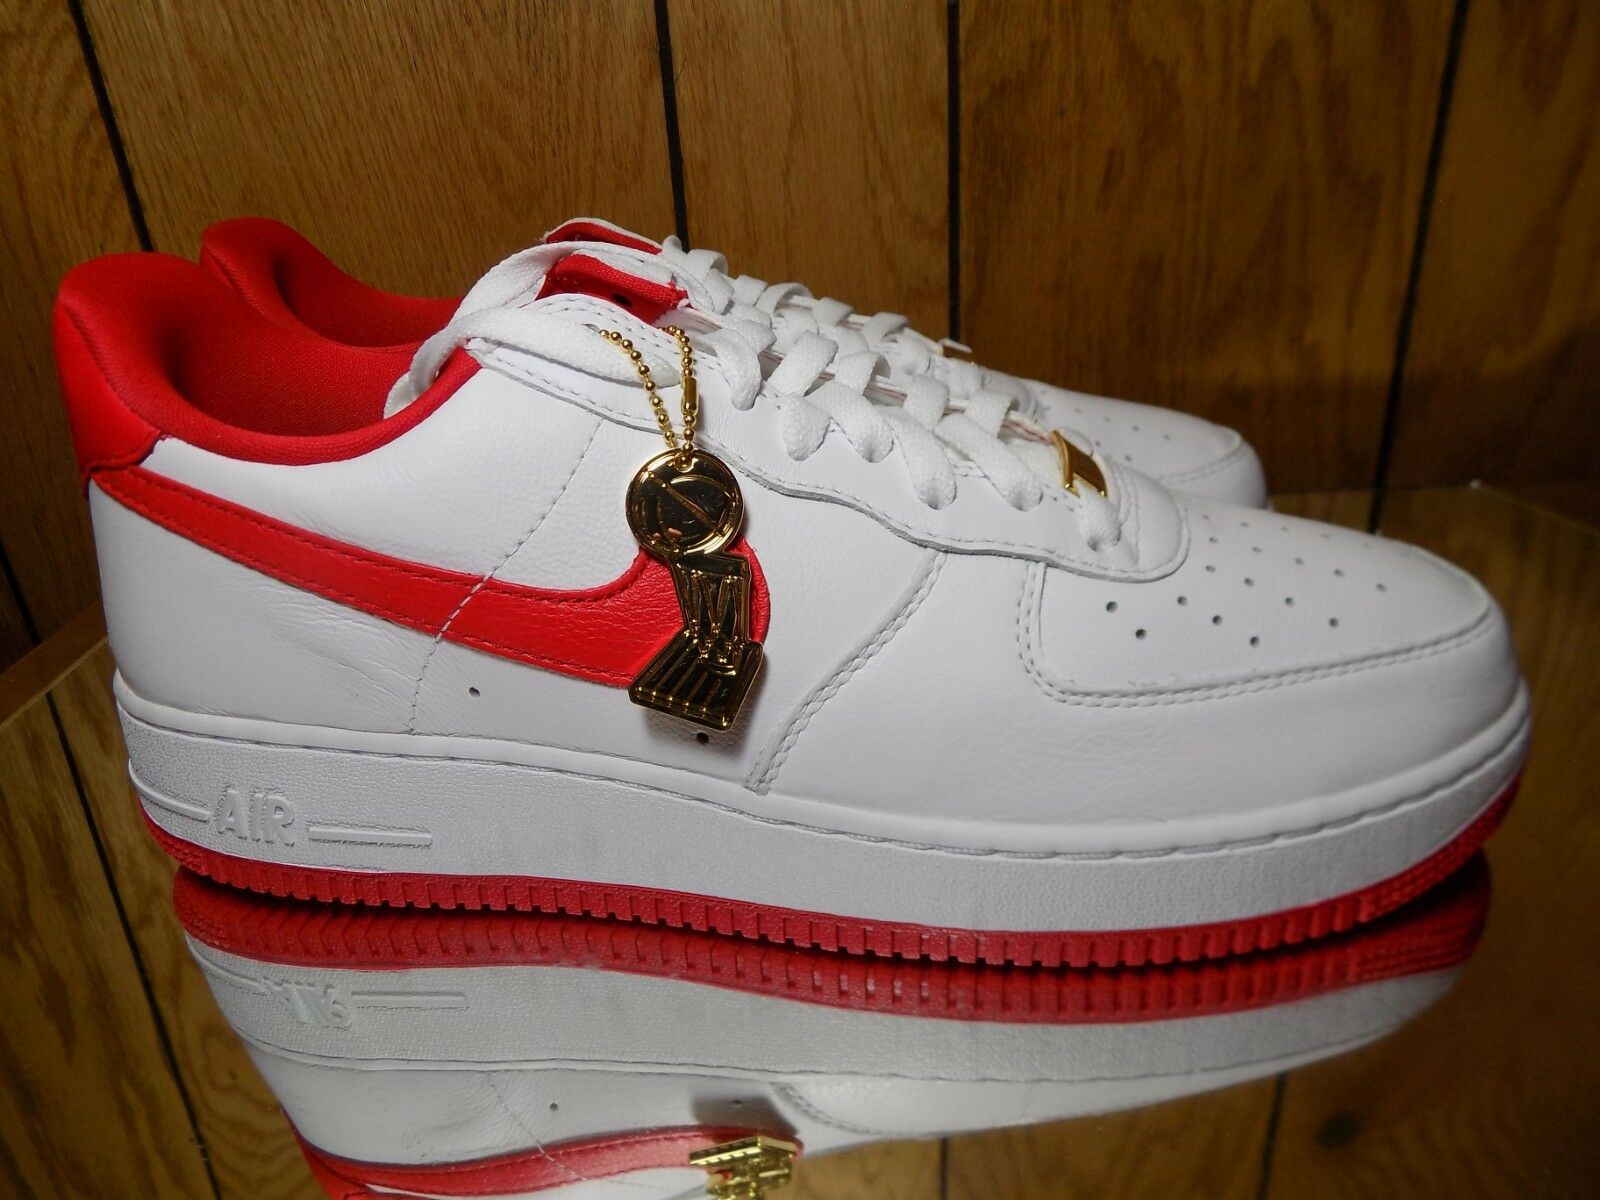 Nike Air Force 1 Low CT16 THINK 16 MOSES MALONE FO FI FO AQ5107-100 sz 11